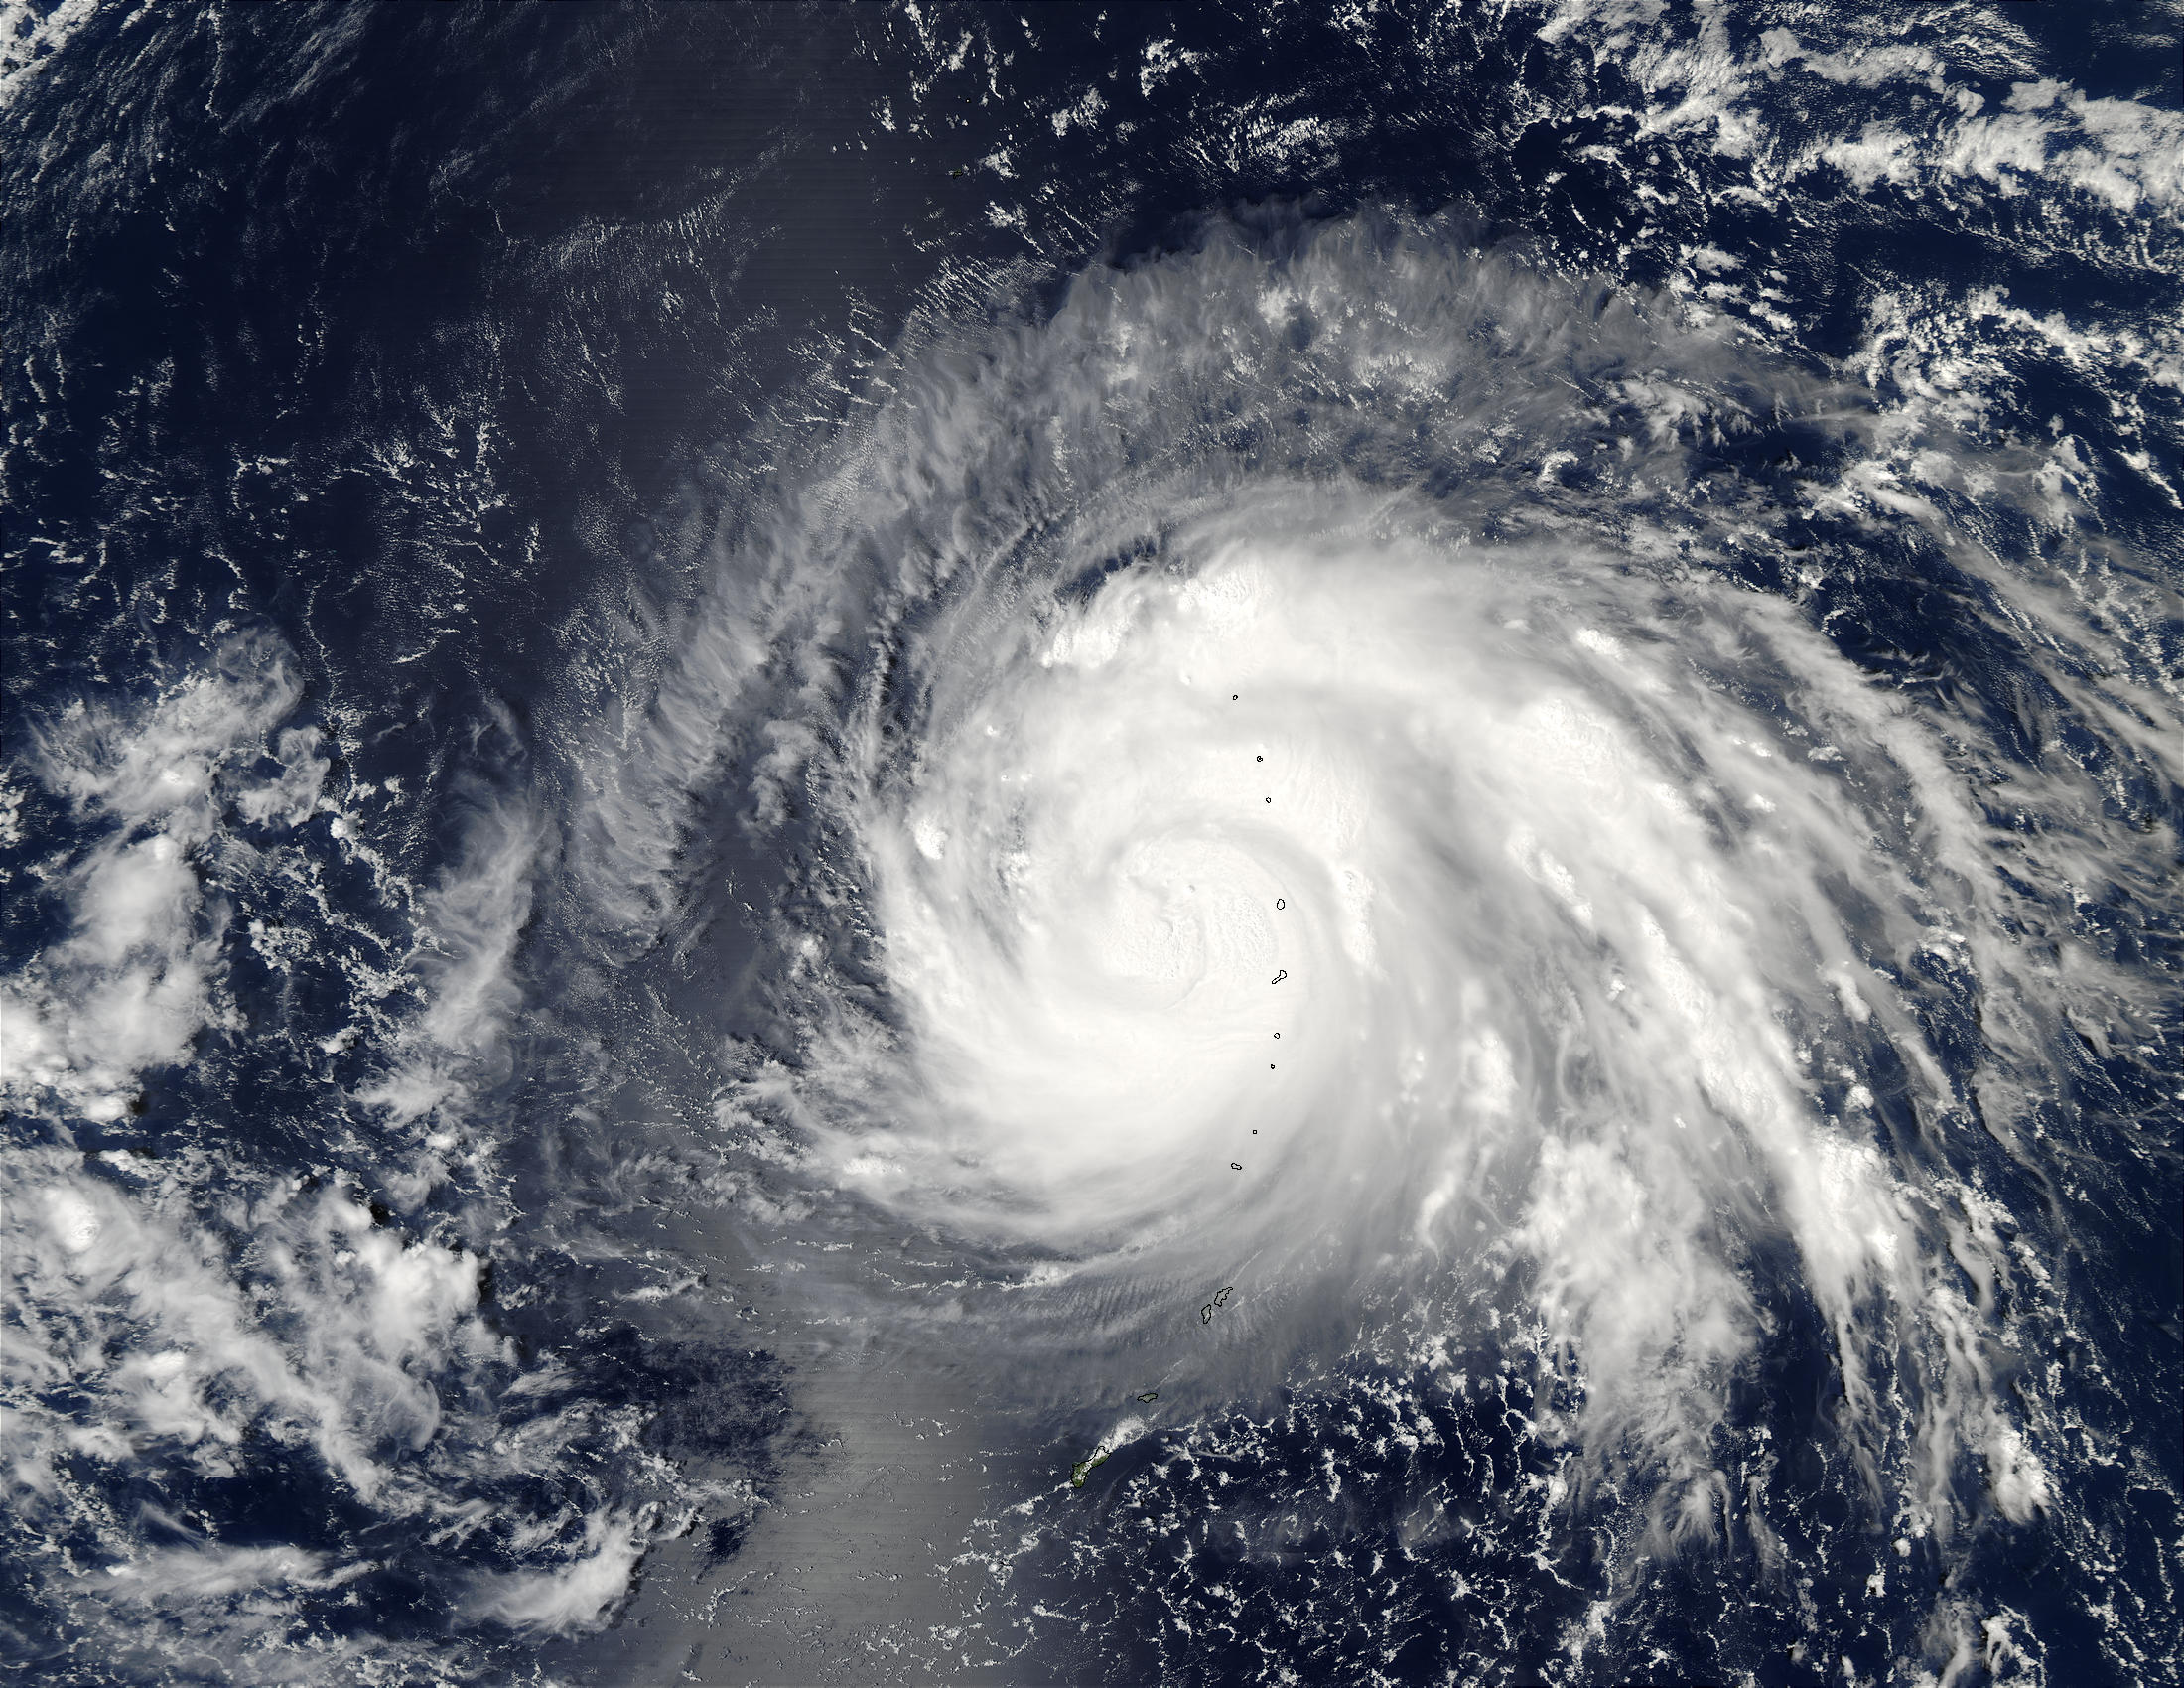 Typhoon Higos over Mariana Islands, Pacific Ocean - related image preview